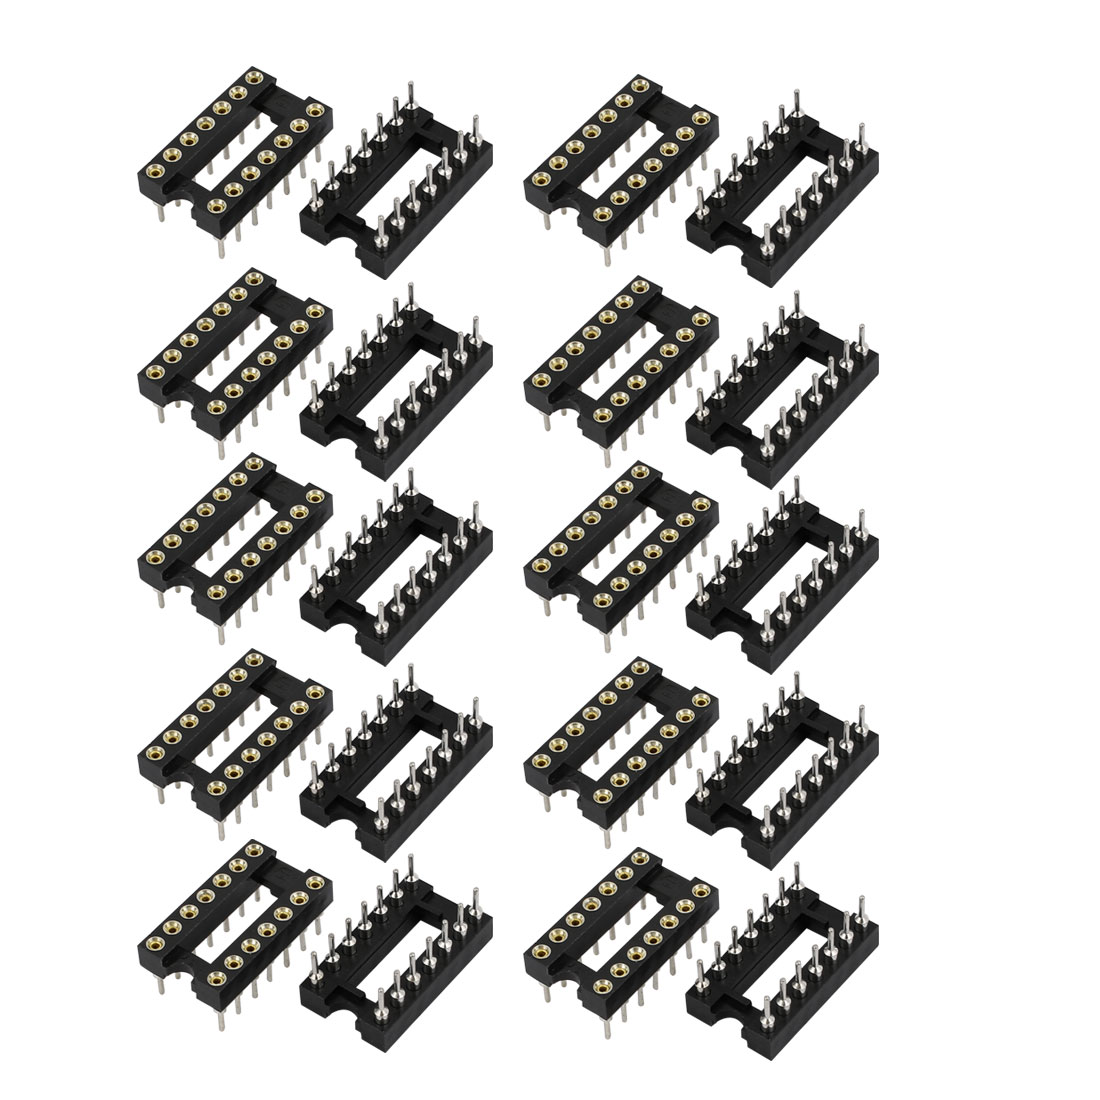 20Pcs Flat Ribbon Cable 2 Rows 14 Round Hole Terminals IDC Socket Connector